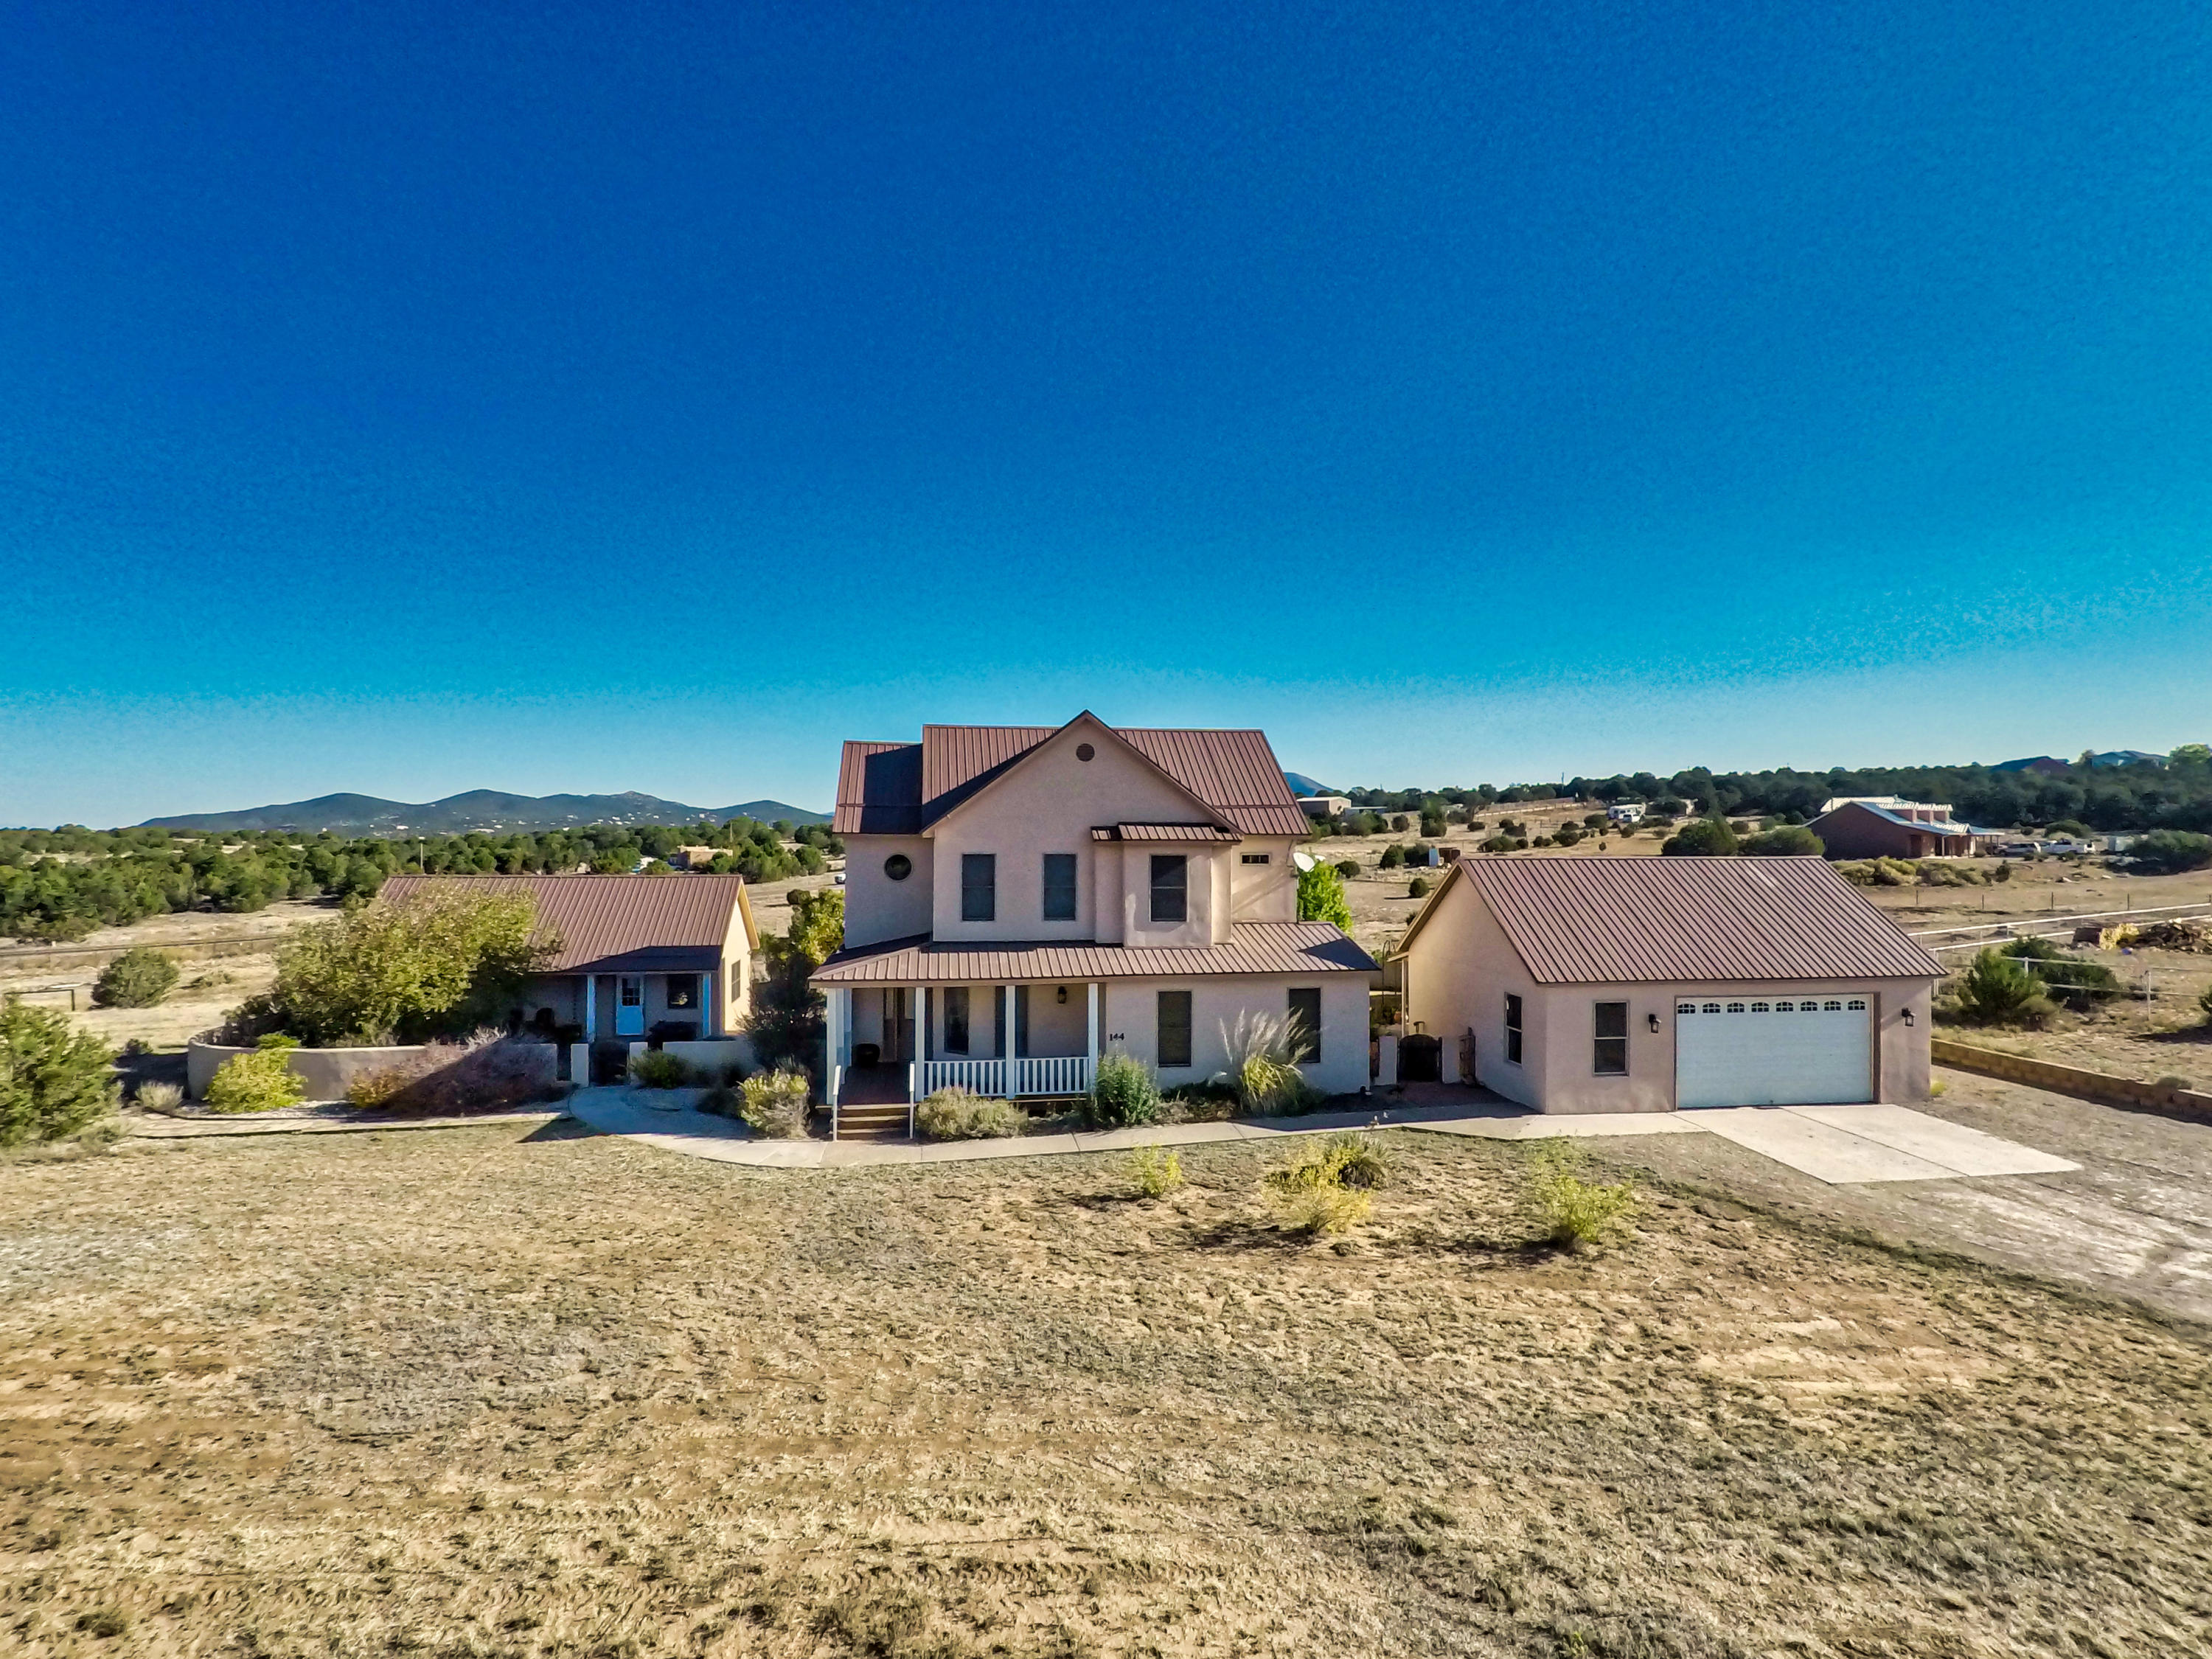 144 ELITE Drive Property Photo - Tijeras, NM real estate listing